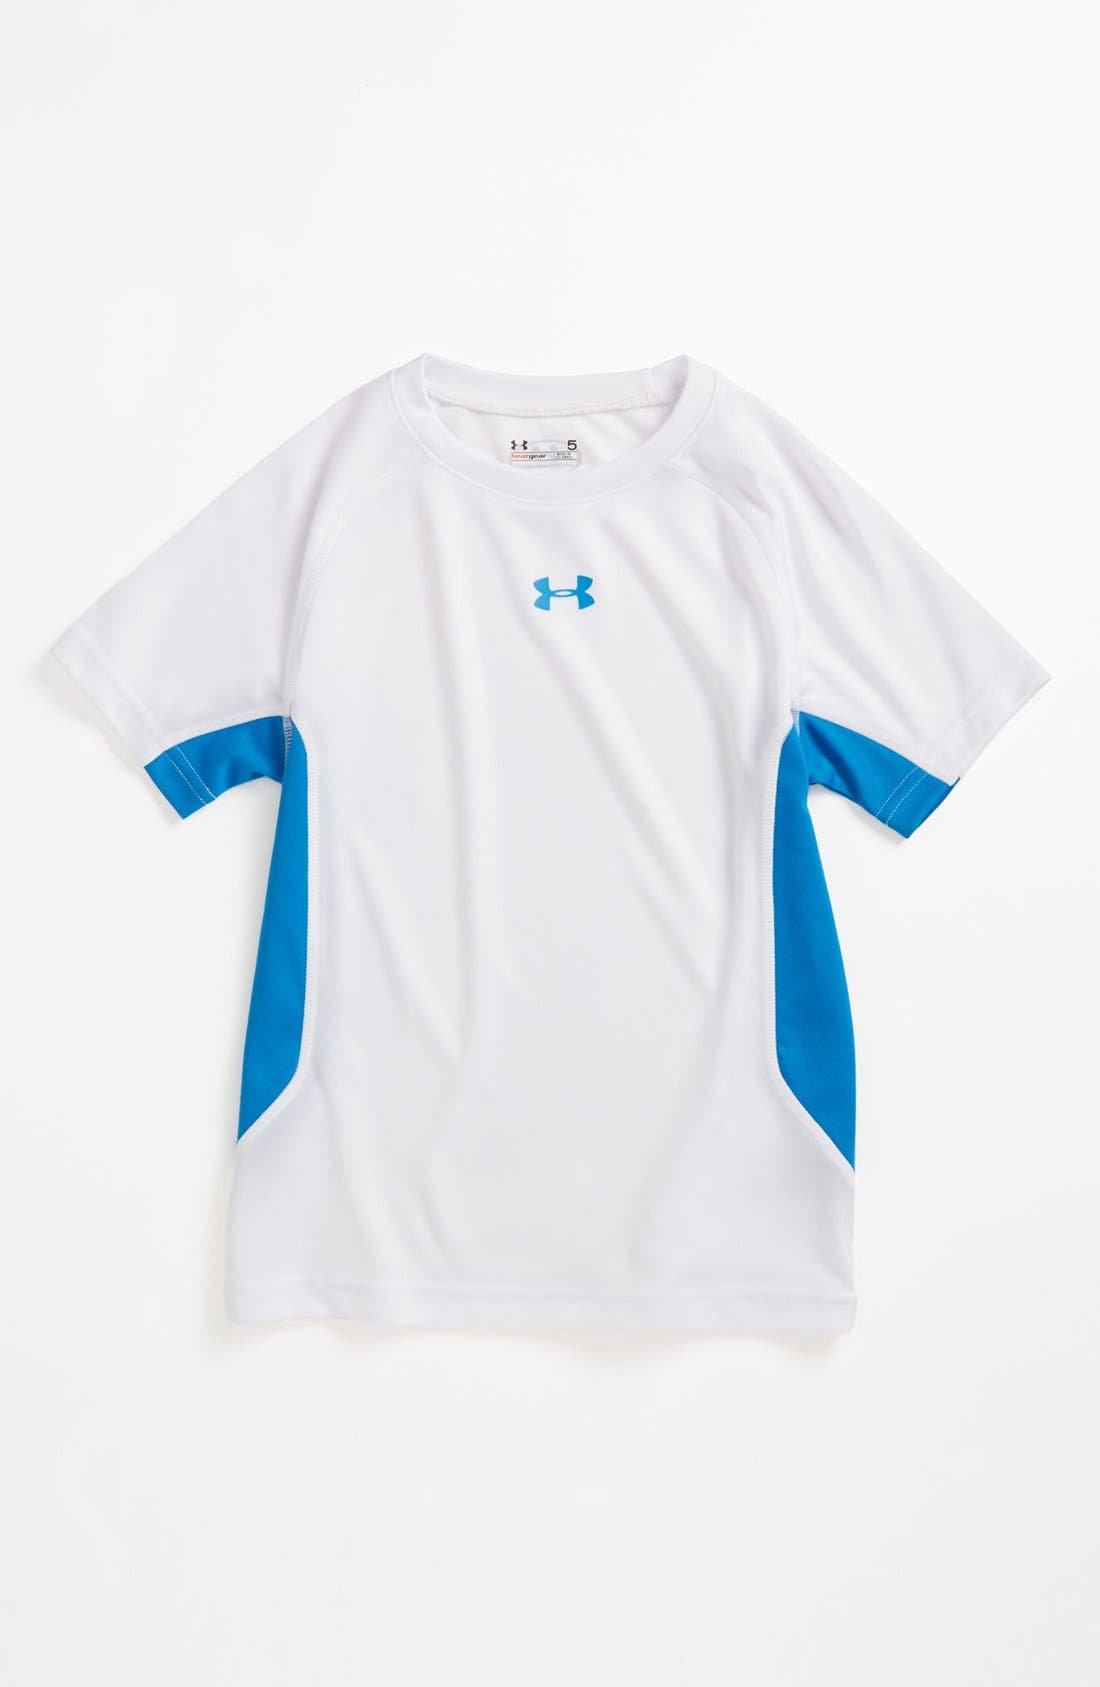 Alternate Image 1 Selected - Under Armour 'Scrimmage' HeatGear® T-Shirt (Toddler Boys)